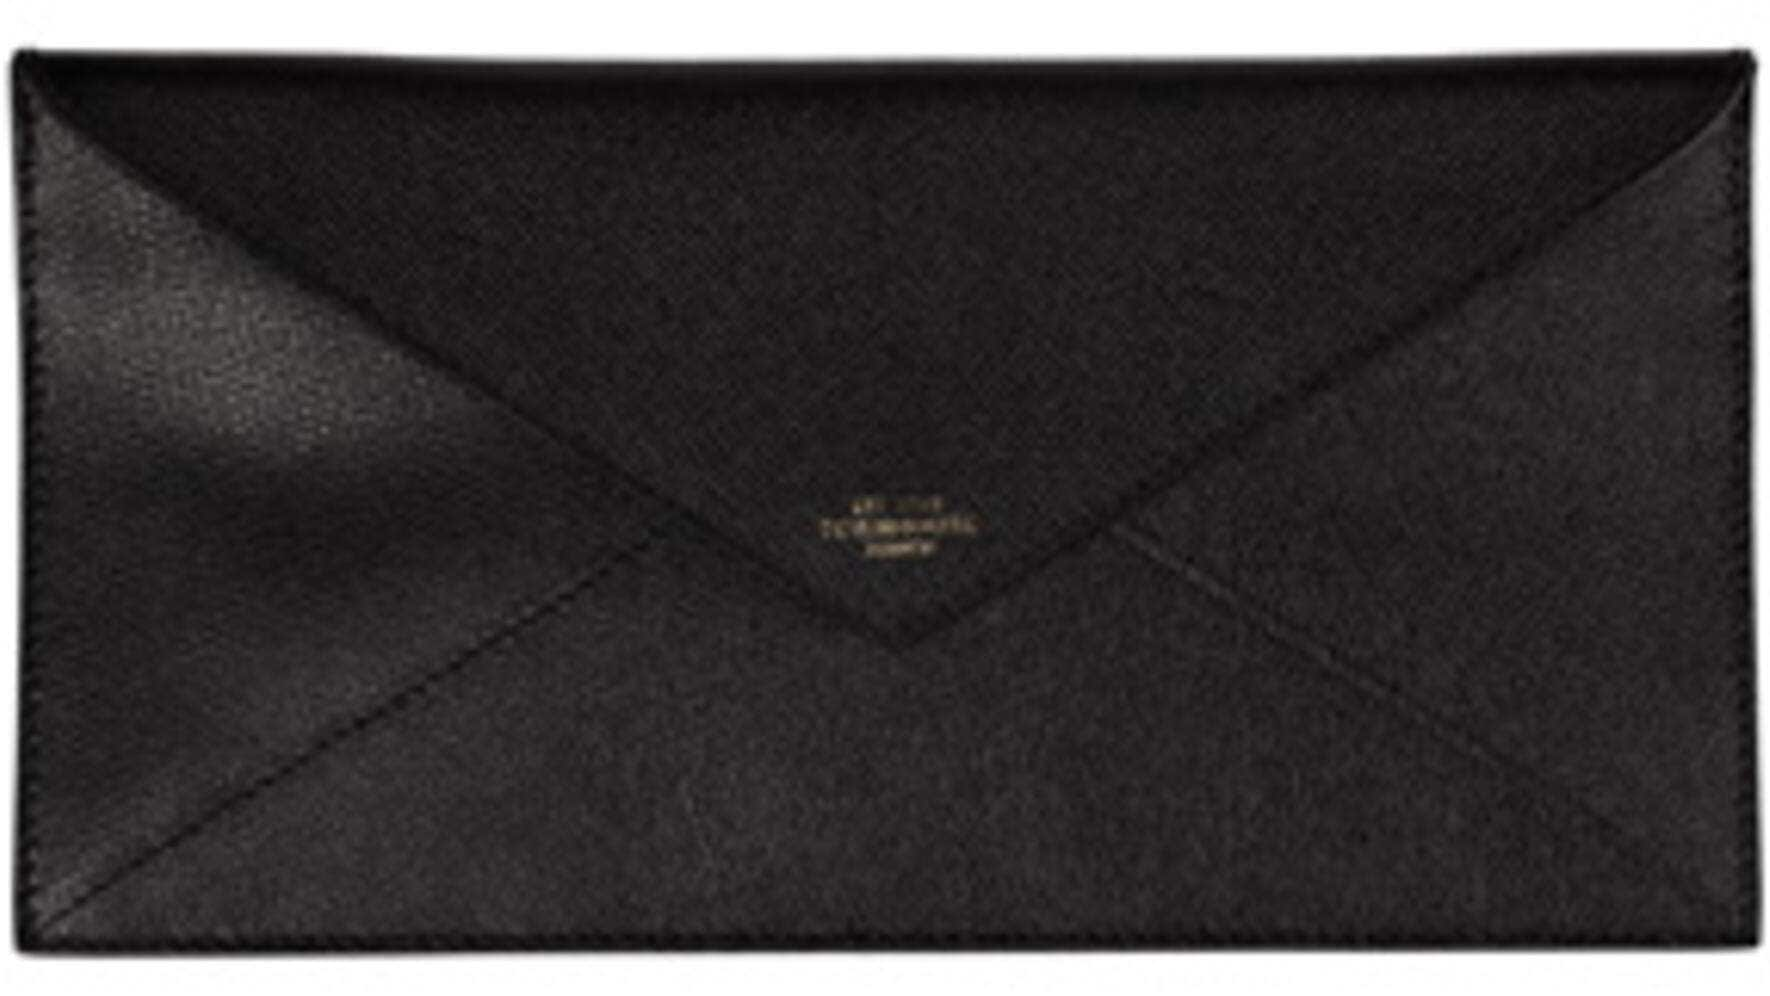 Adventskalender 2013 1. Dezember Clutch Townhouse